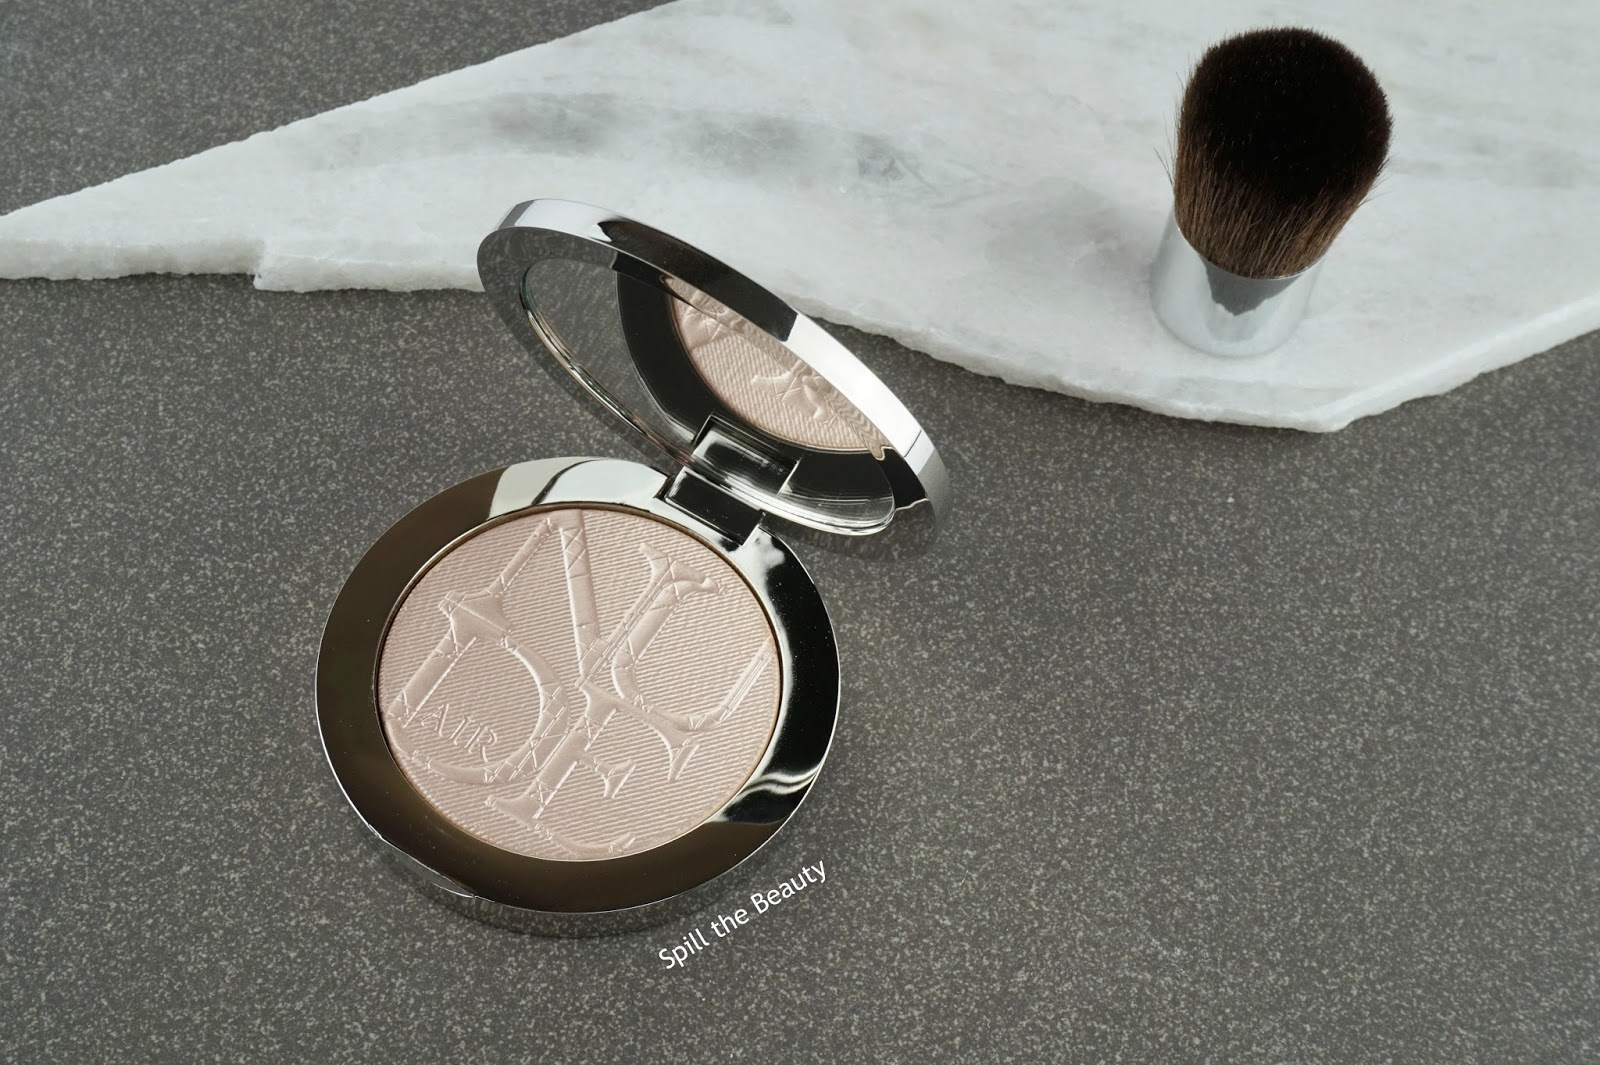 Dior Diorskin Nude Air Luminizer Shimmering Sculpting Powder #002 – Review, Swatches, and Look